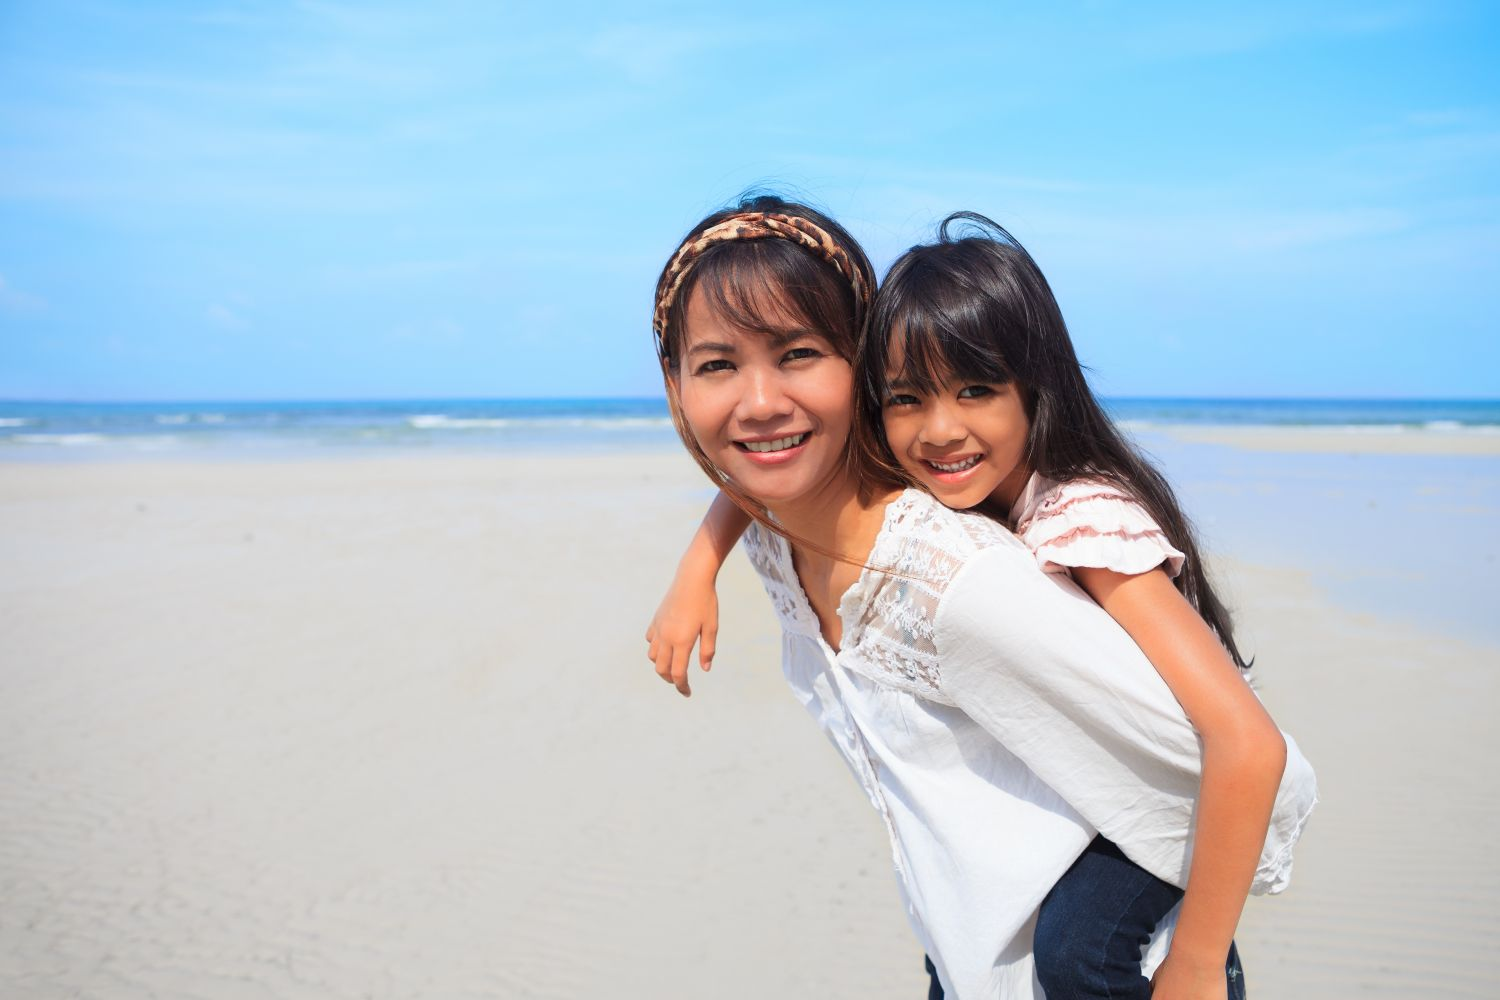 Dentist and assistant with young child, we specialize in family dentistry in Kailua, HI